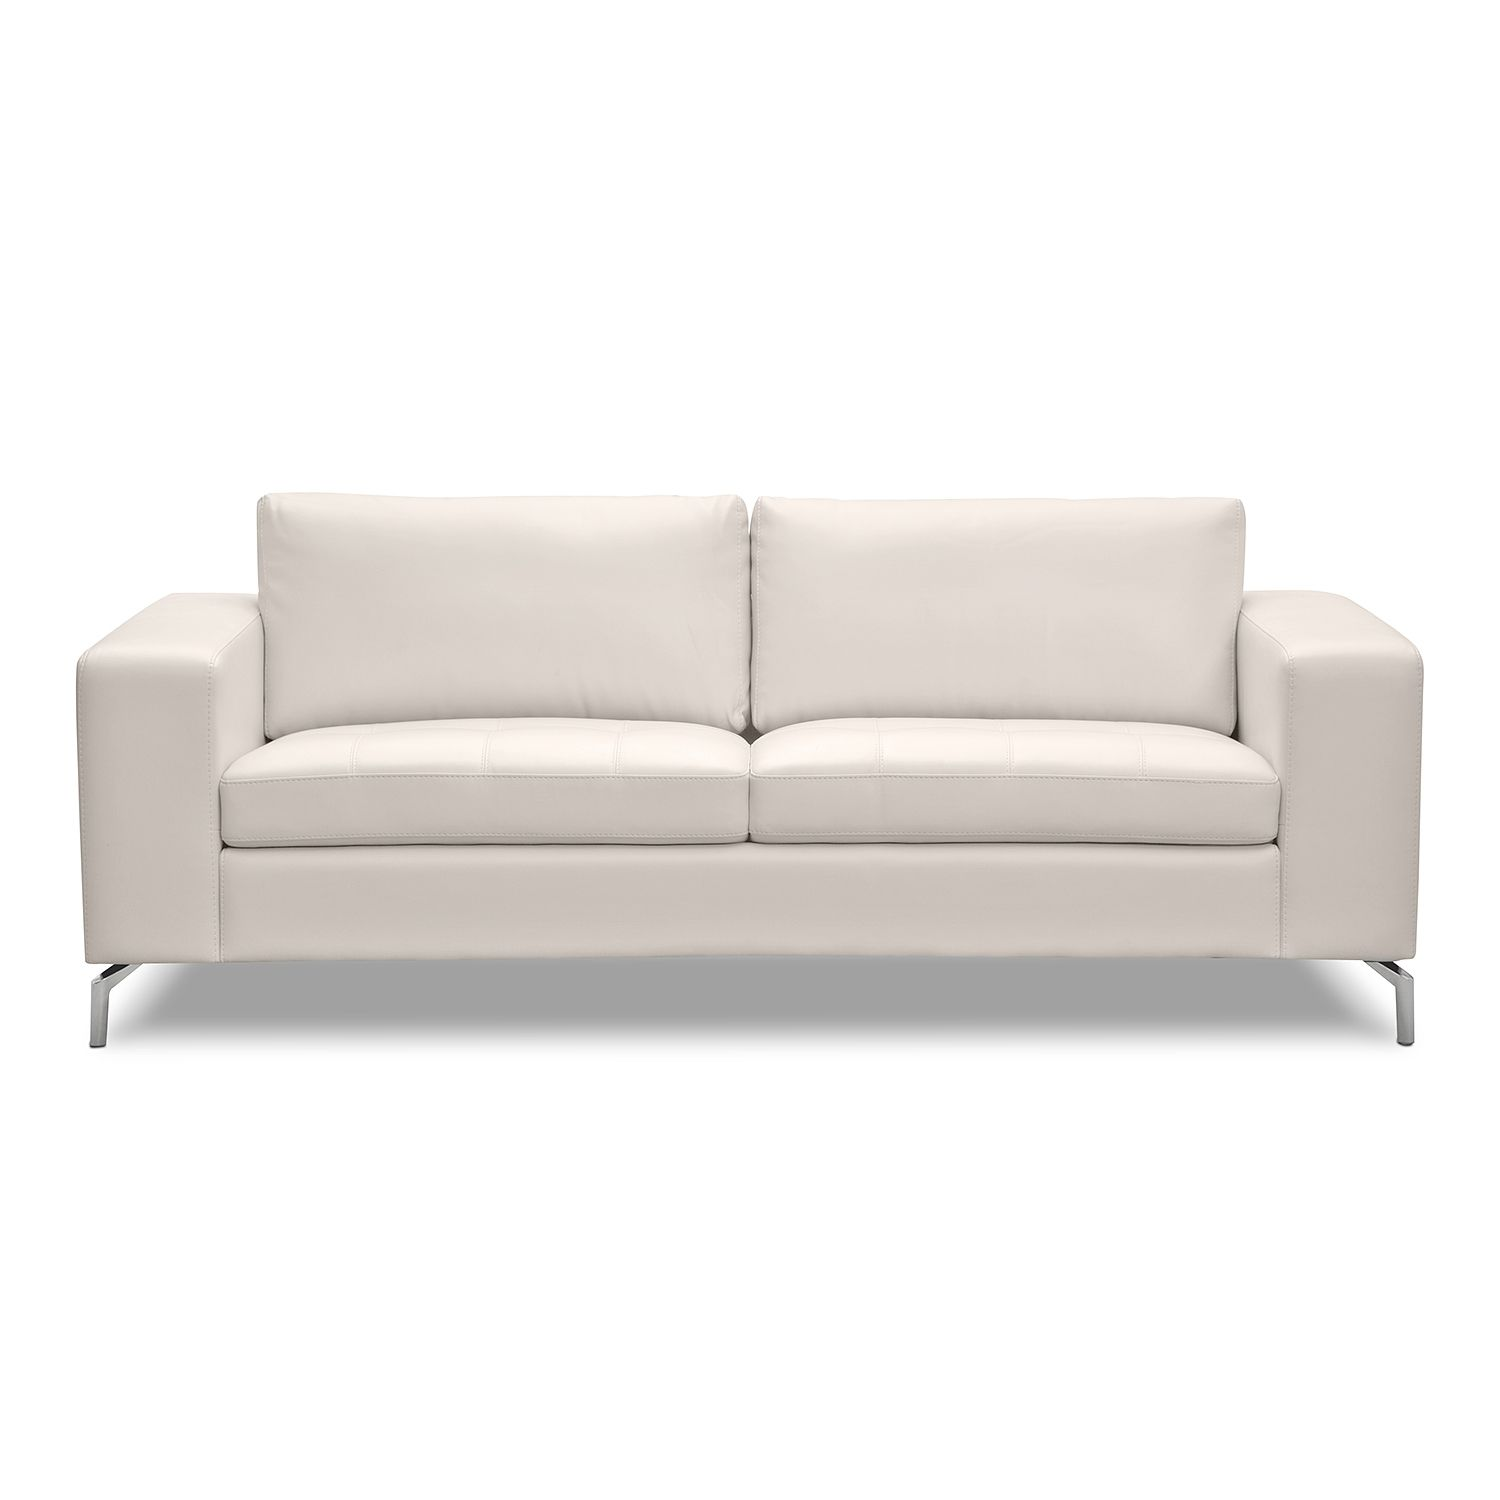 450 Leather Sofa Value City Furniture